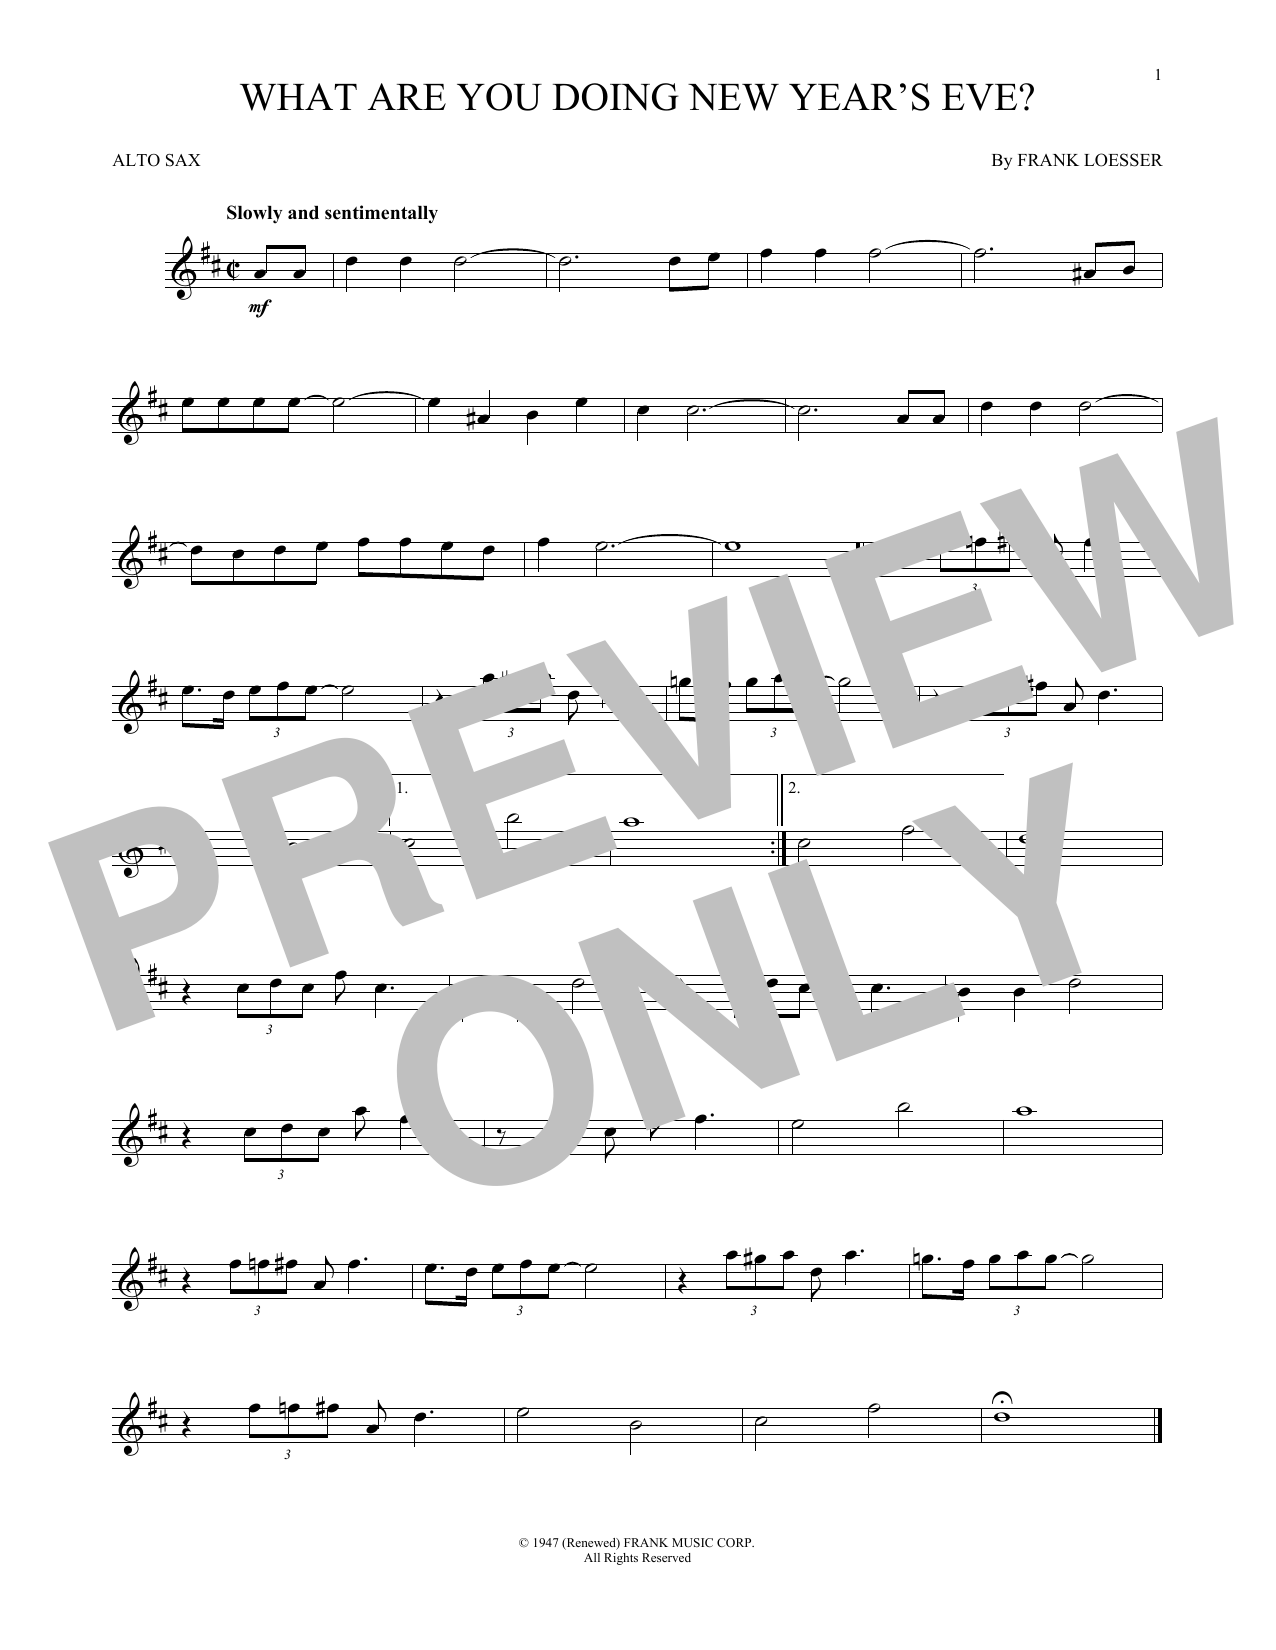 What Are You Doing New Year's Eve? (Alto Sax Solo)